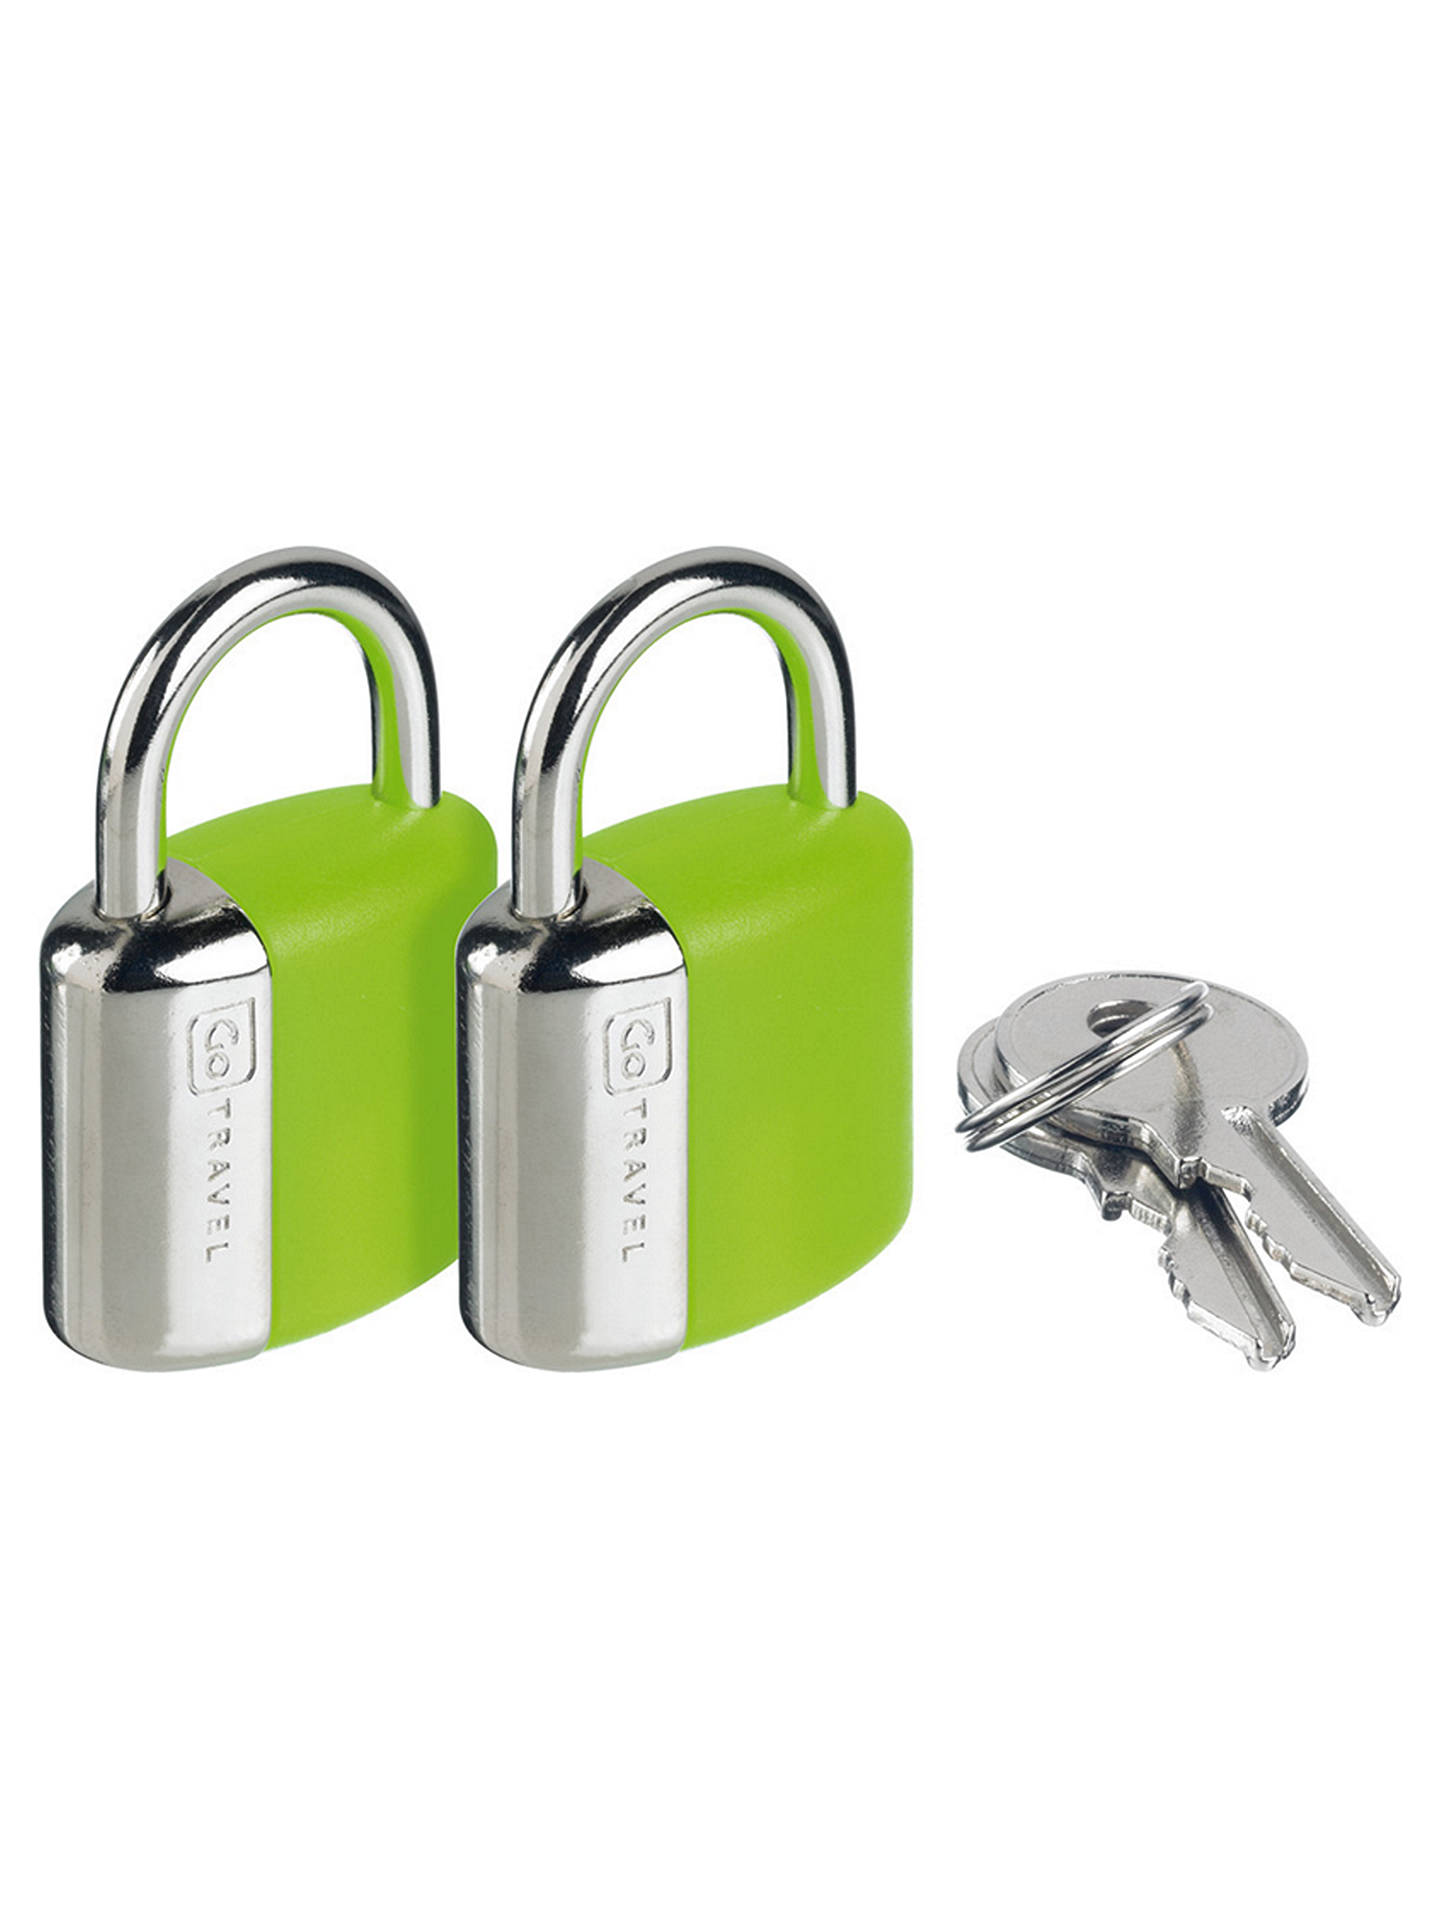 BuyDesign Go Glo Key Locks, Assorted Colours Online at johnlewis.com